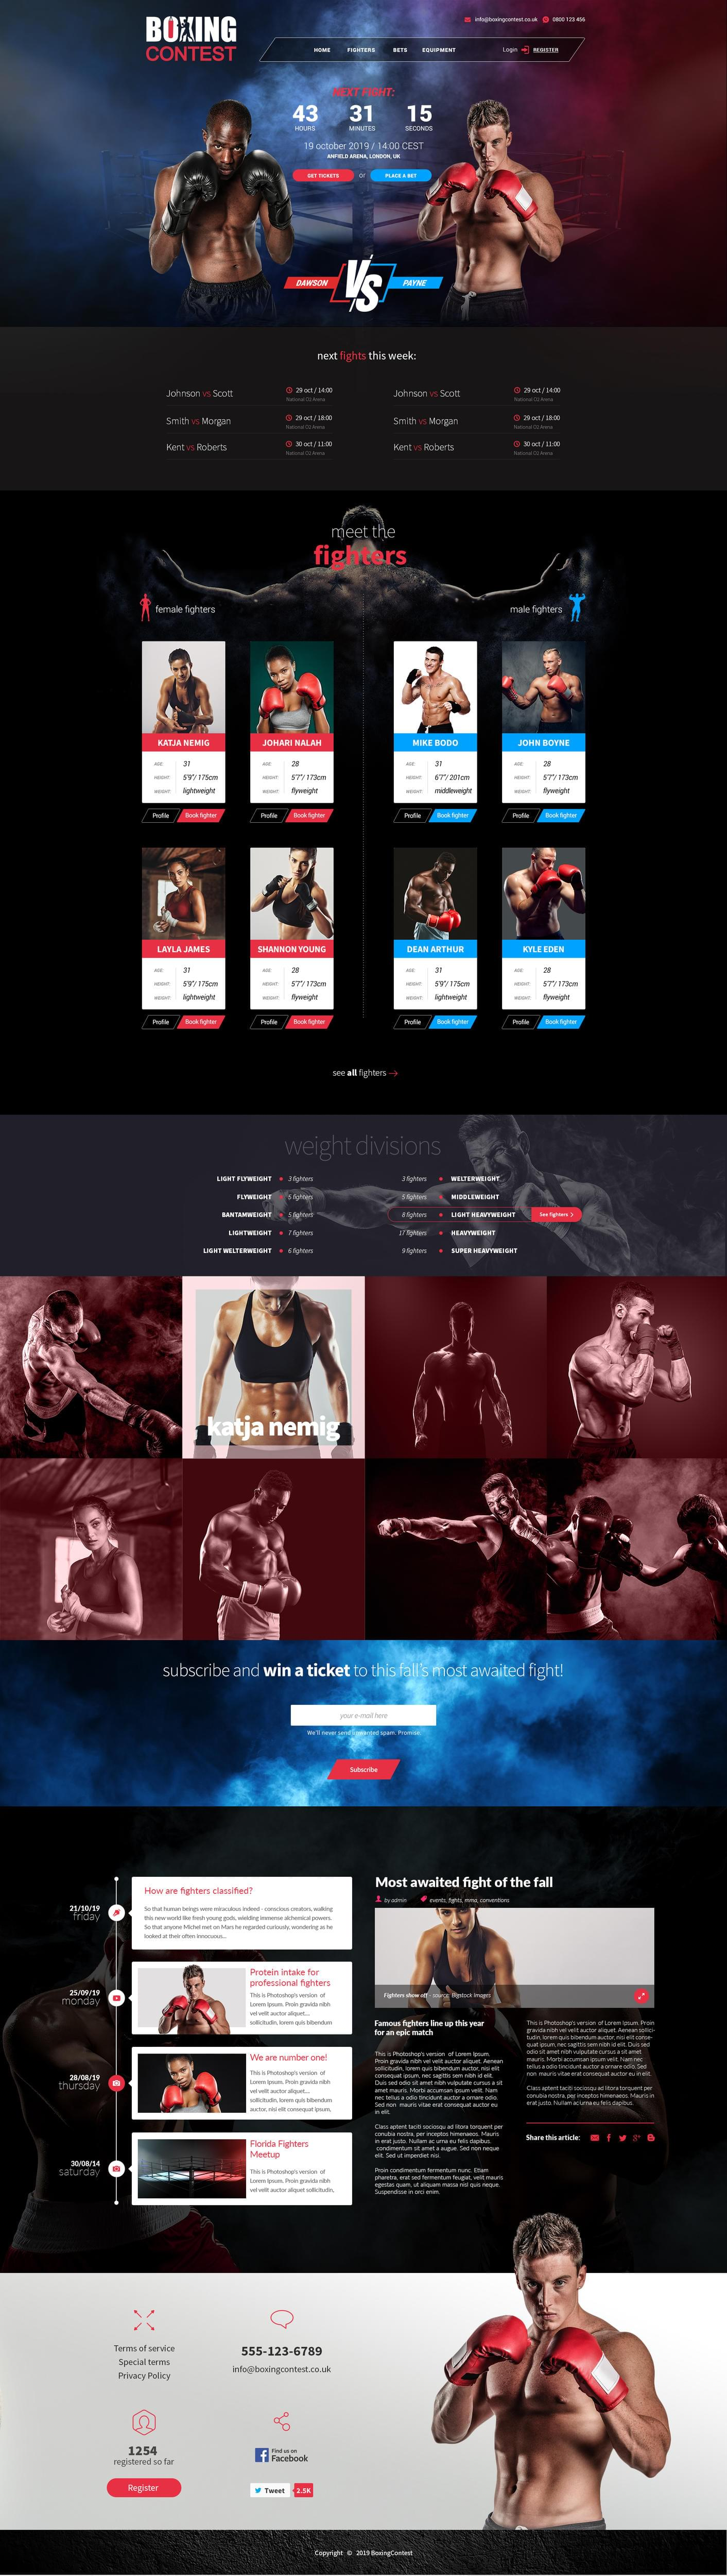 High-Quality and Creative Onepage Design by ikaruna_design - 117376